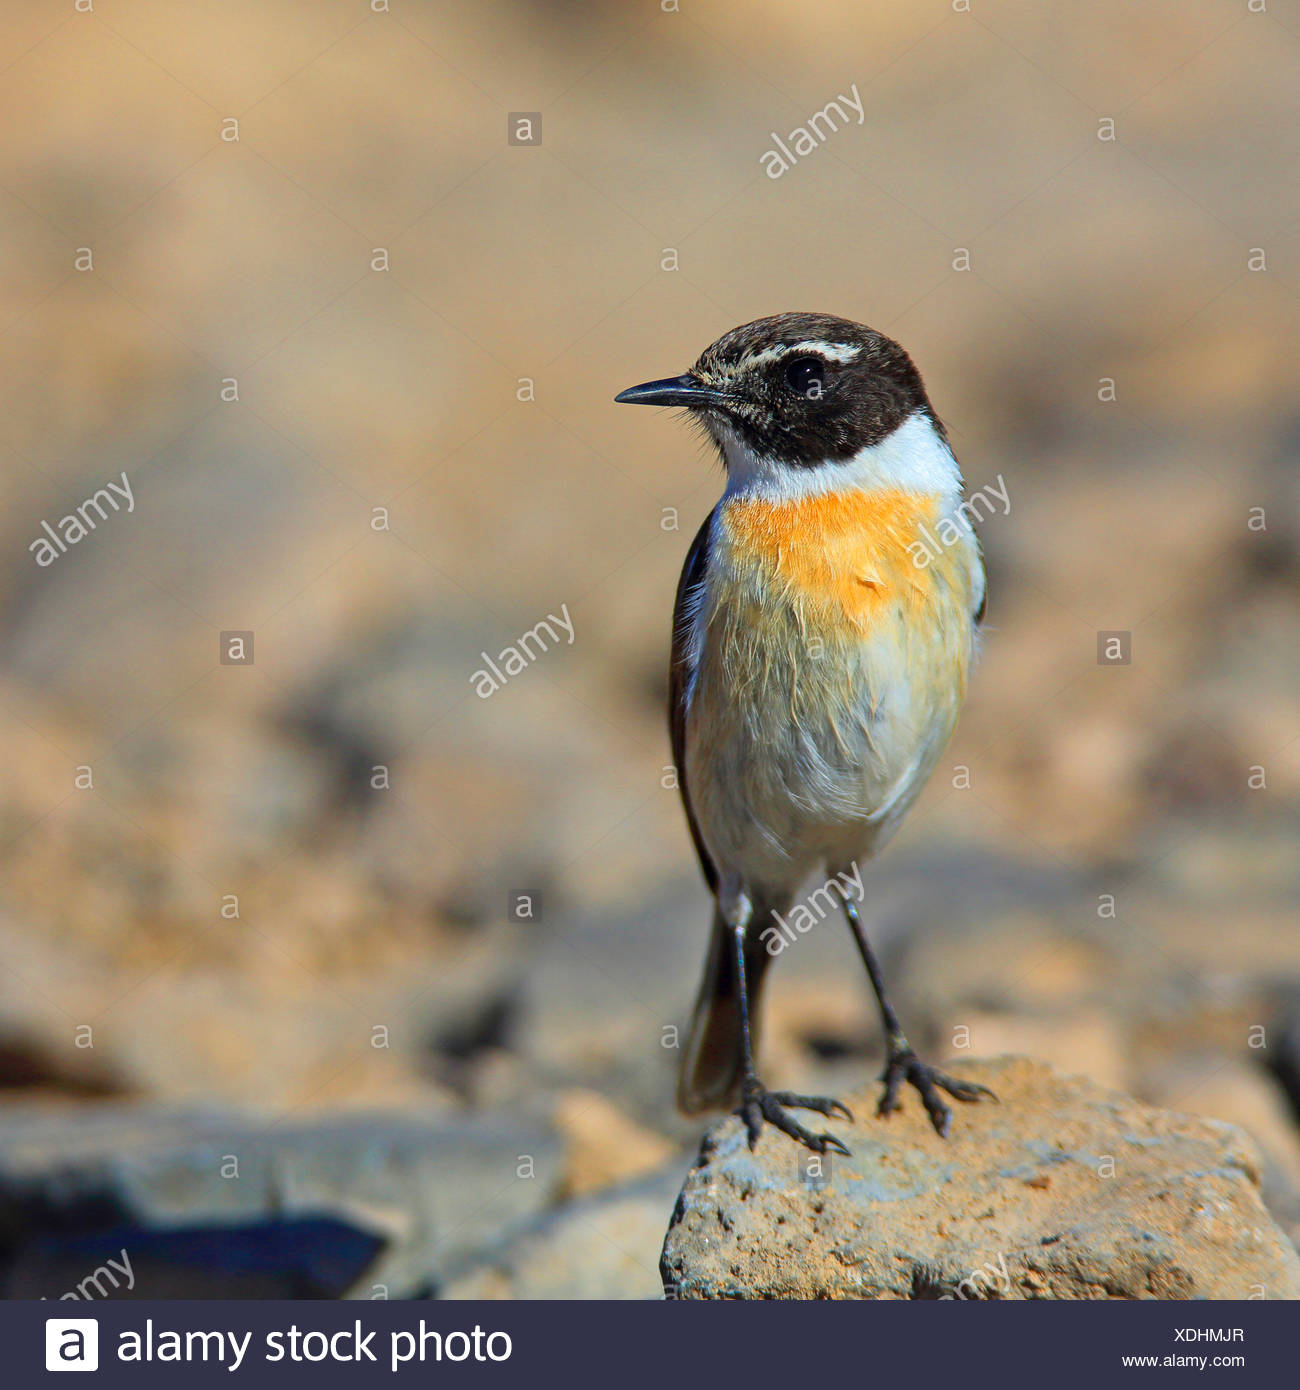 Adult canary chat island